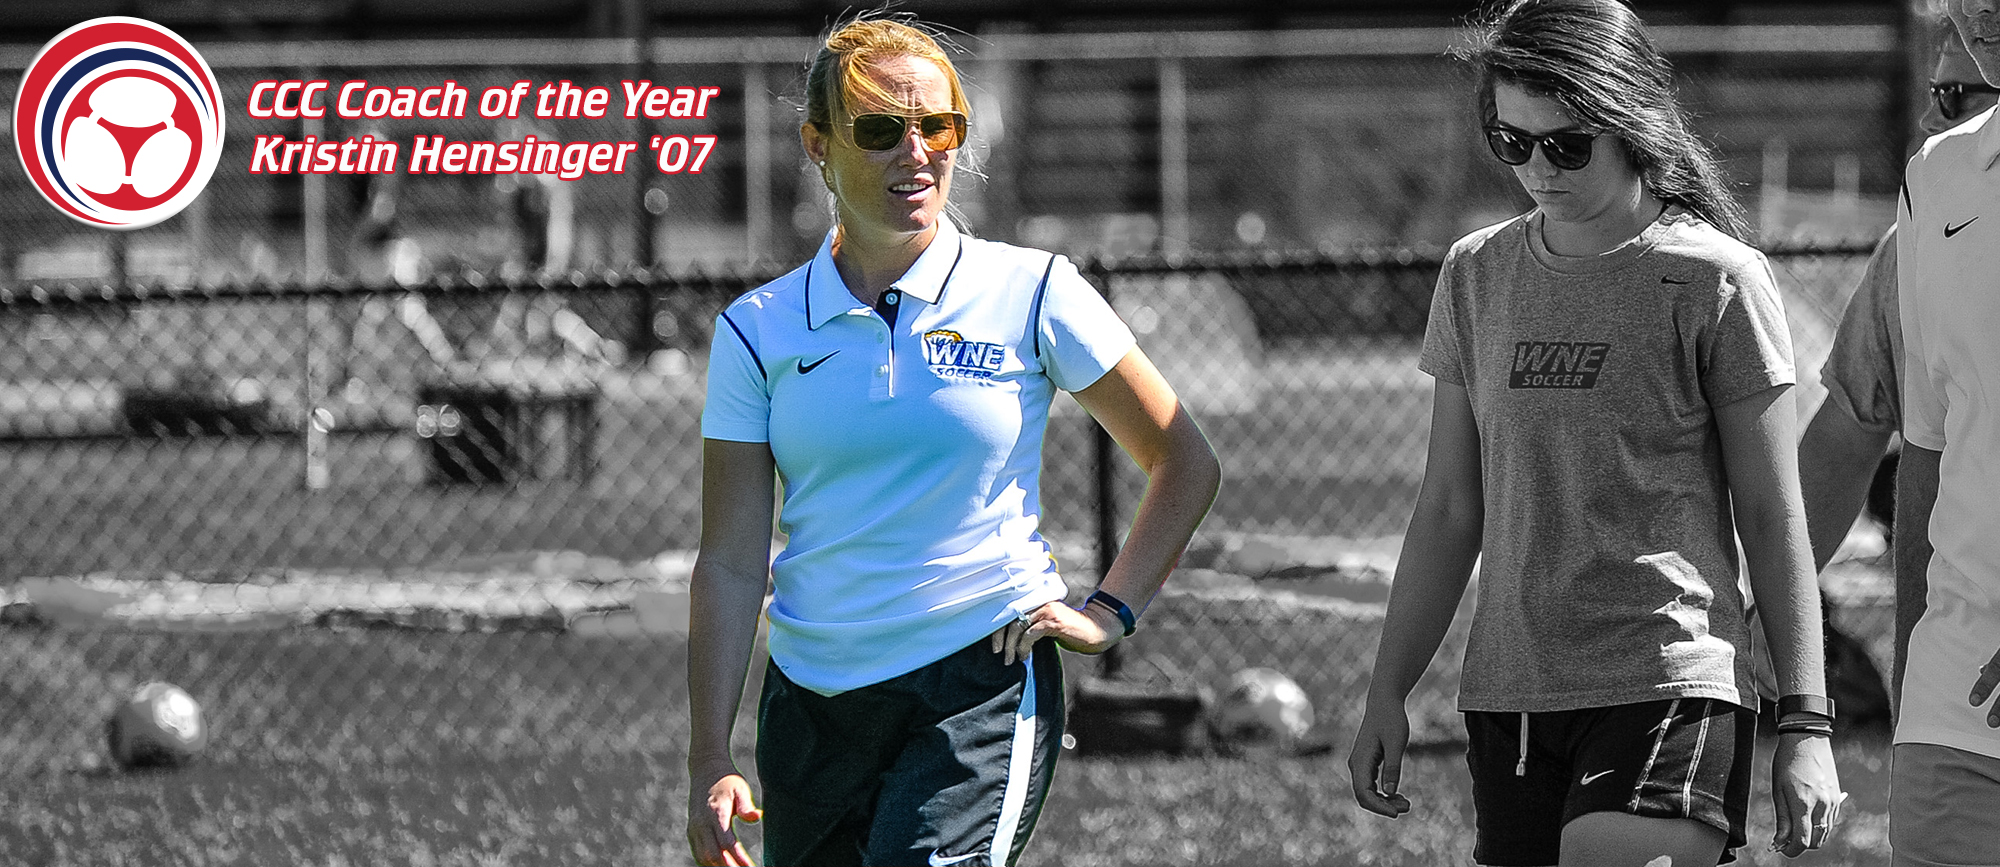 Kristin Hensinger '07 Named CCC Co-Coach of the Year